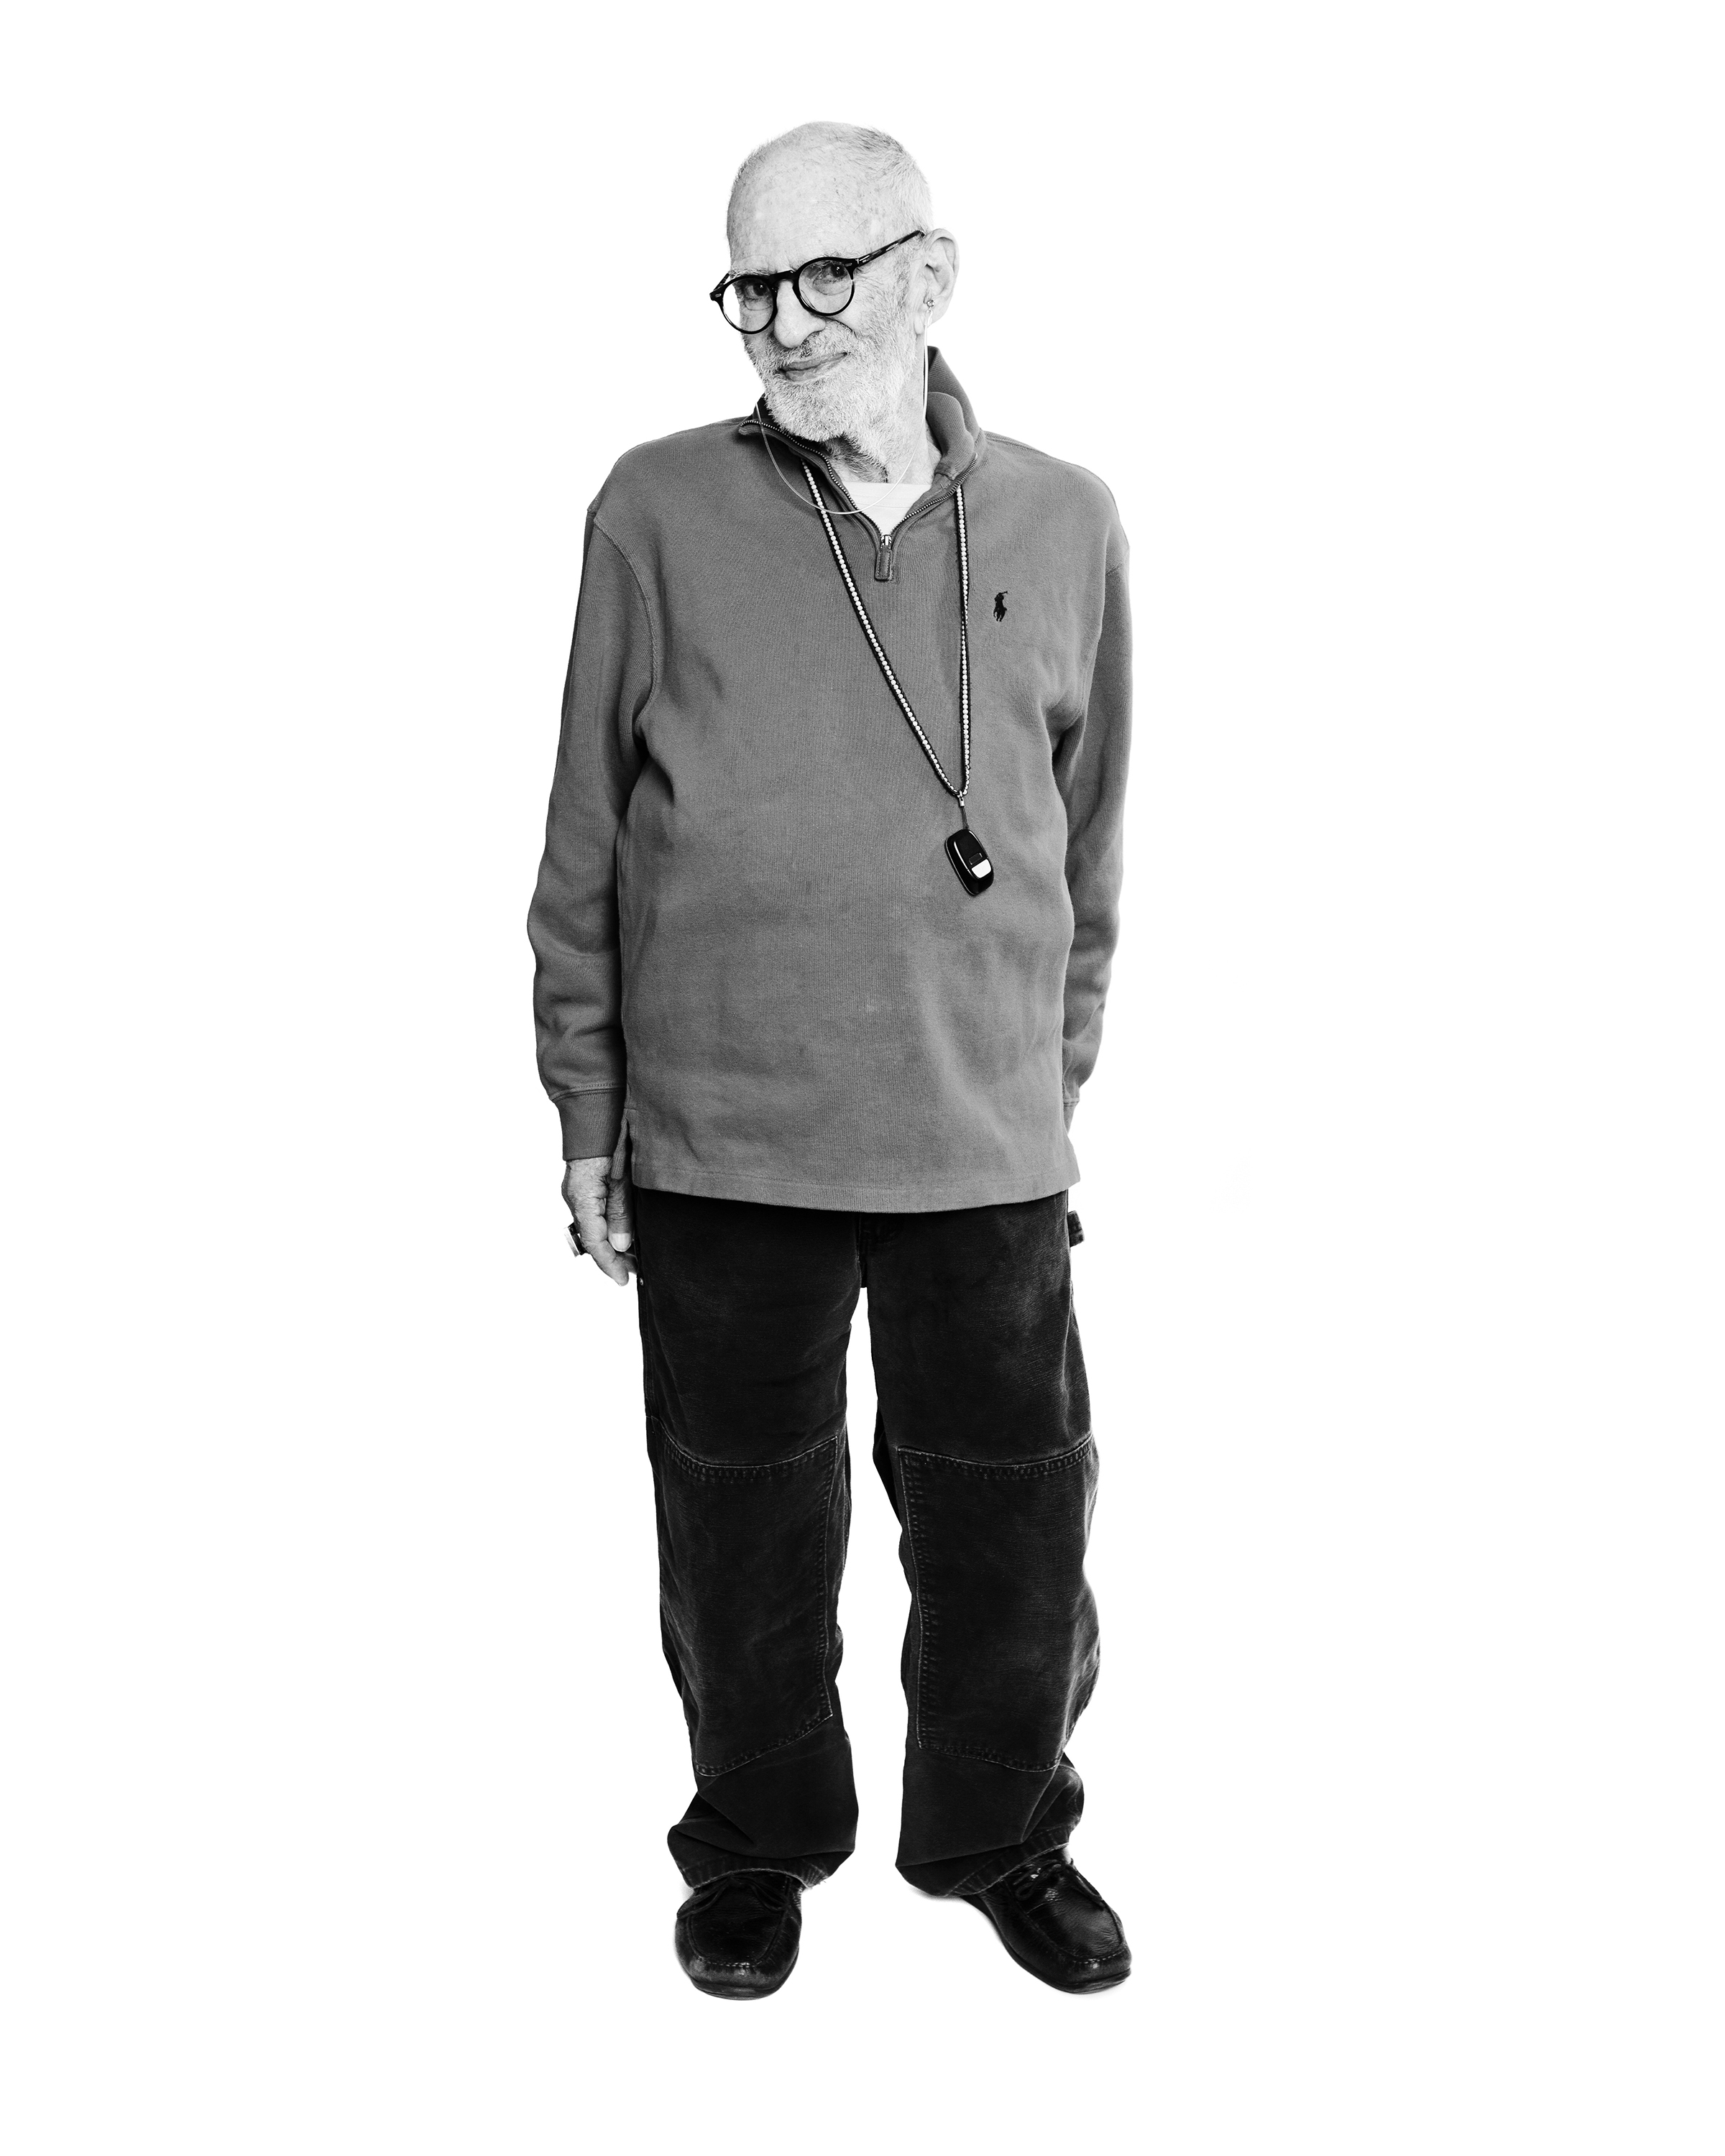 Larry Kramer photographed at his home in NYC.